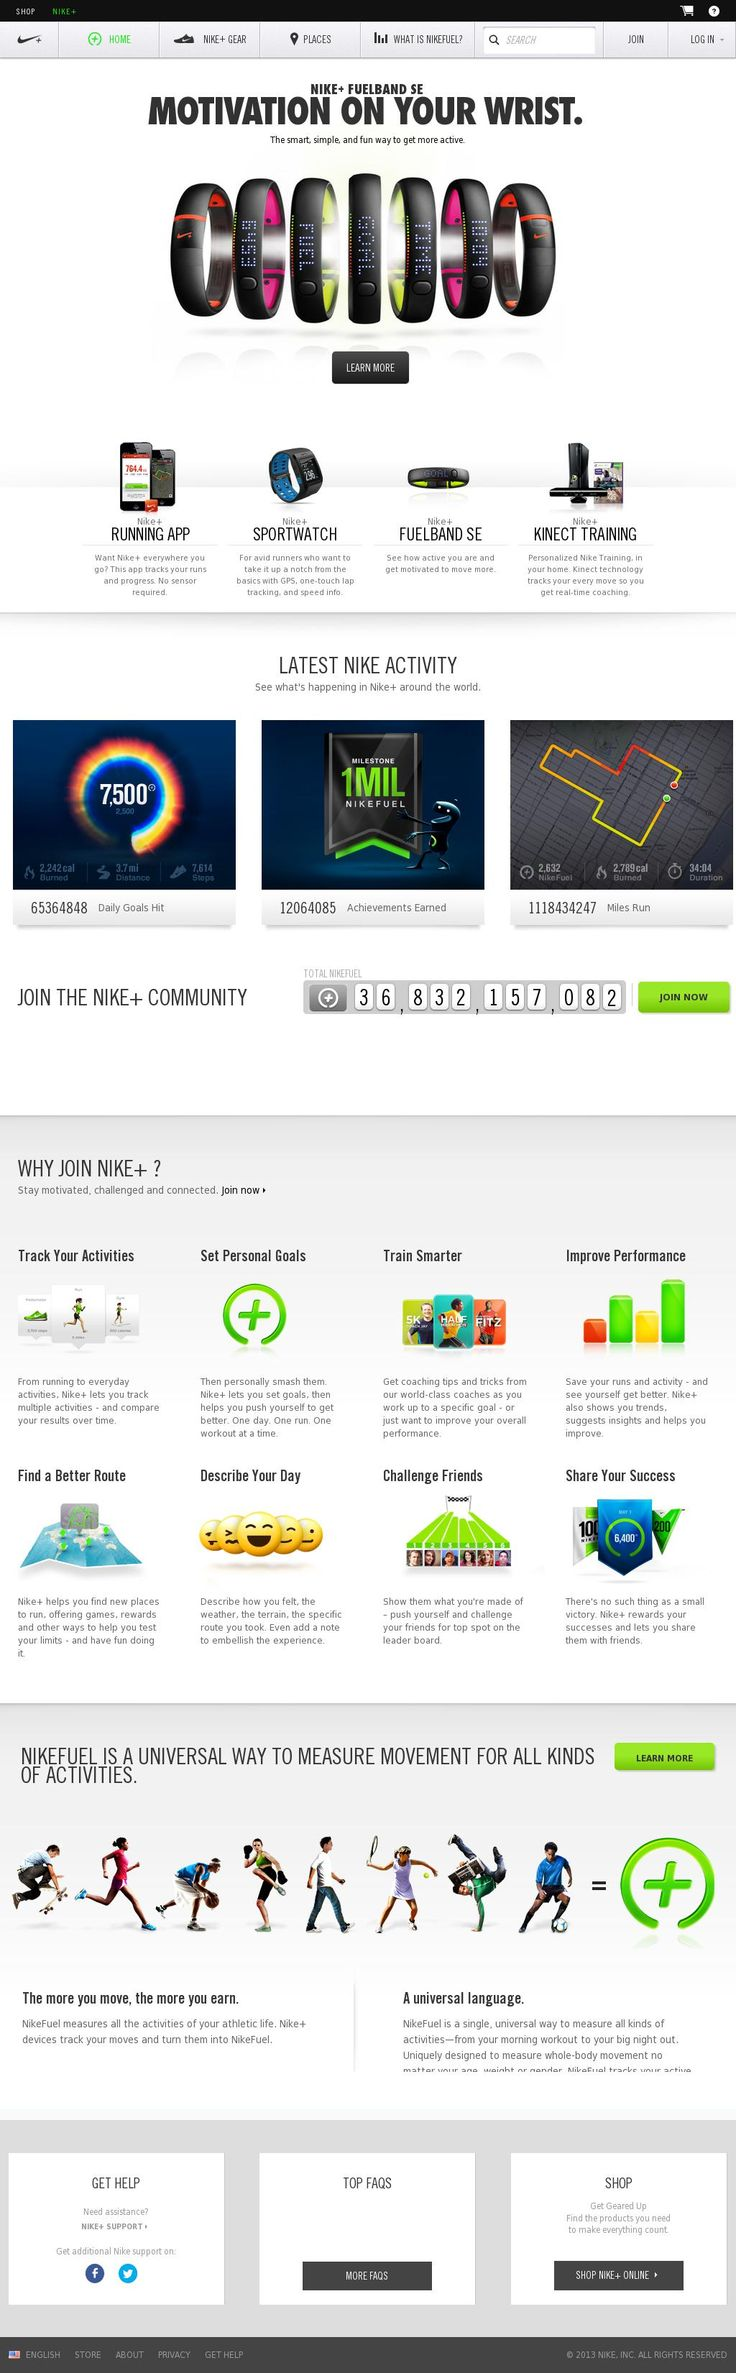 Juan: I like all of the features and options that is made available. Very interactive.  nike plus web